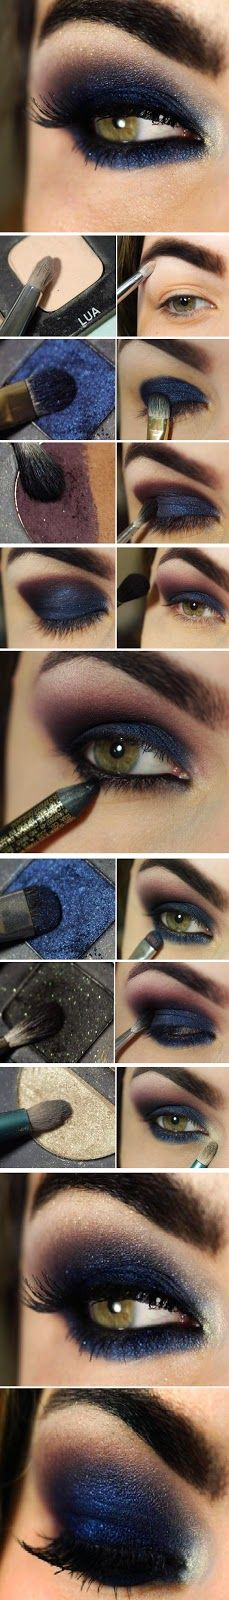 Deep blue + plum drama #makeup #tutorial #evatornadoblog #stepbystep #mycollection